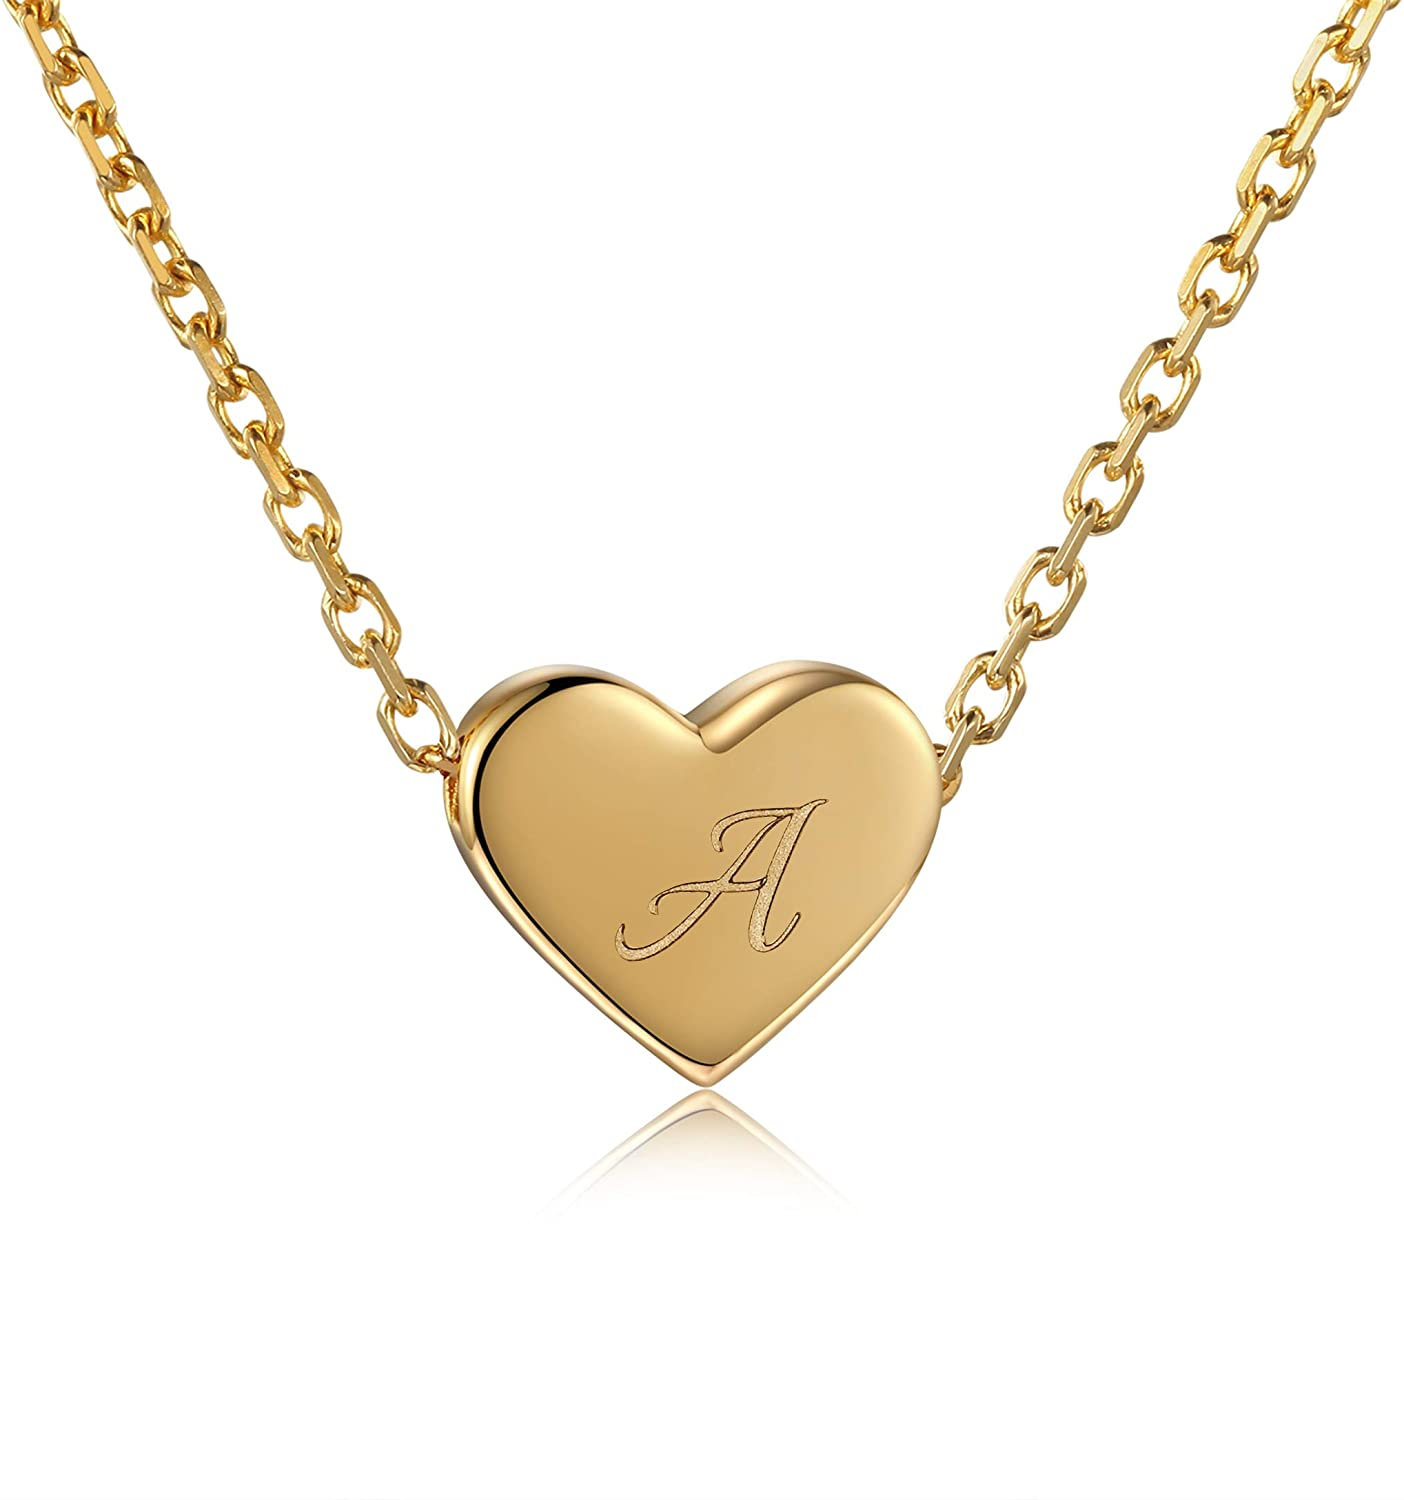 JZCOLOR | Sterling Silver Initial Heart Necklace | 18 K Gold Plated Silver Tiny Love Pendant |Dainty Personalized Letter Choker for Women Girls